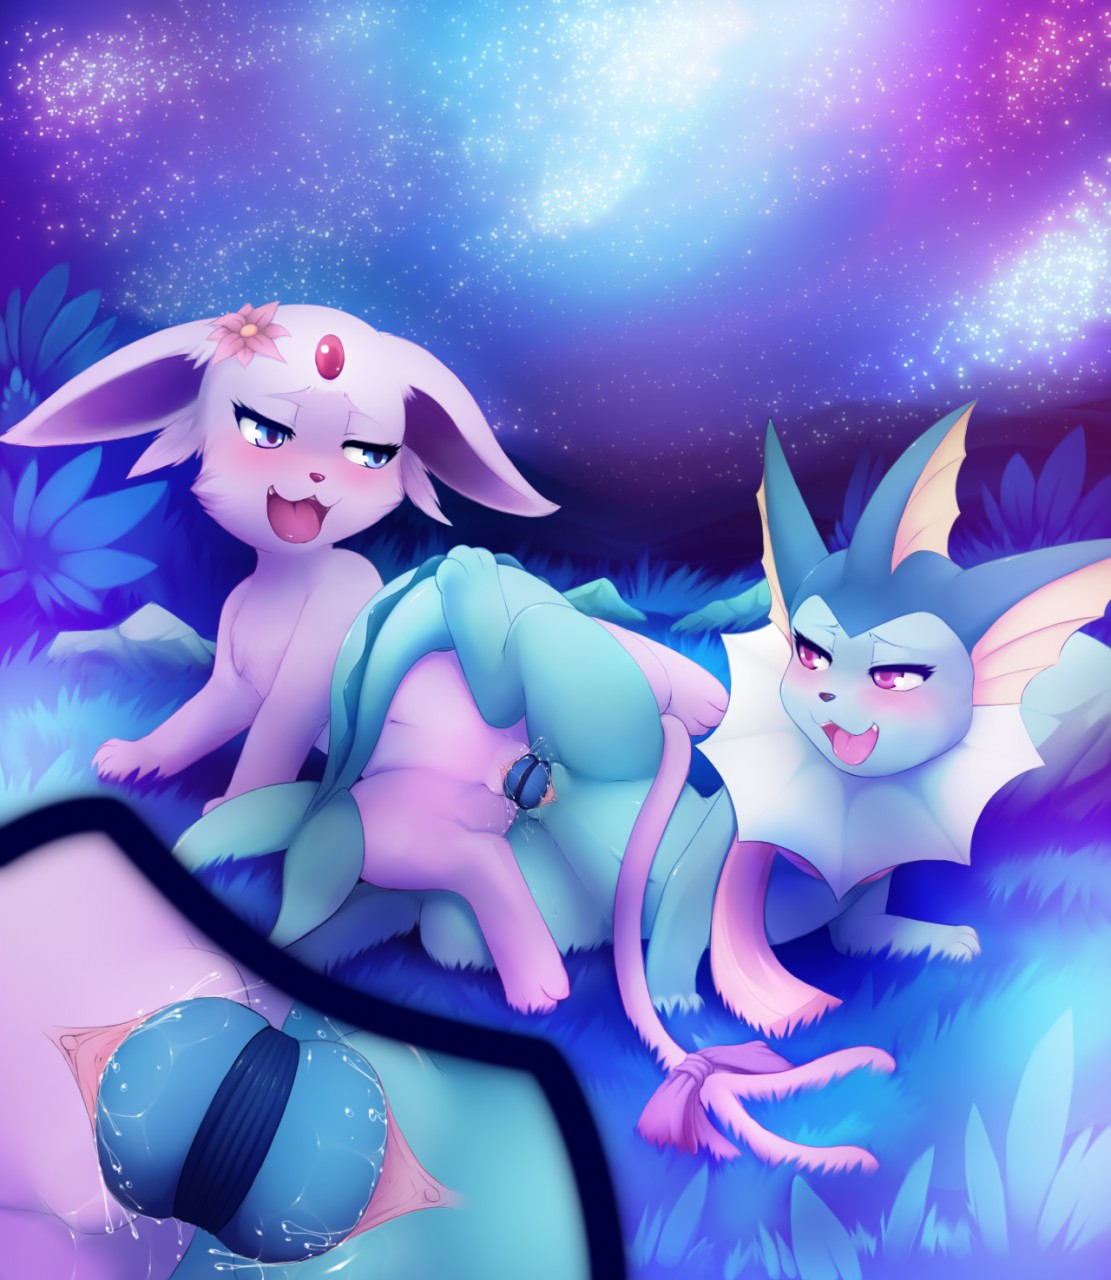 Pictures of female vaporeon furries nude think, that